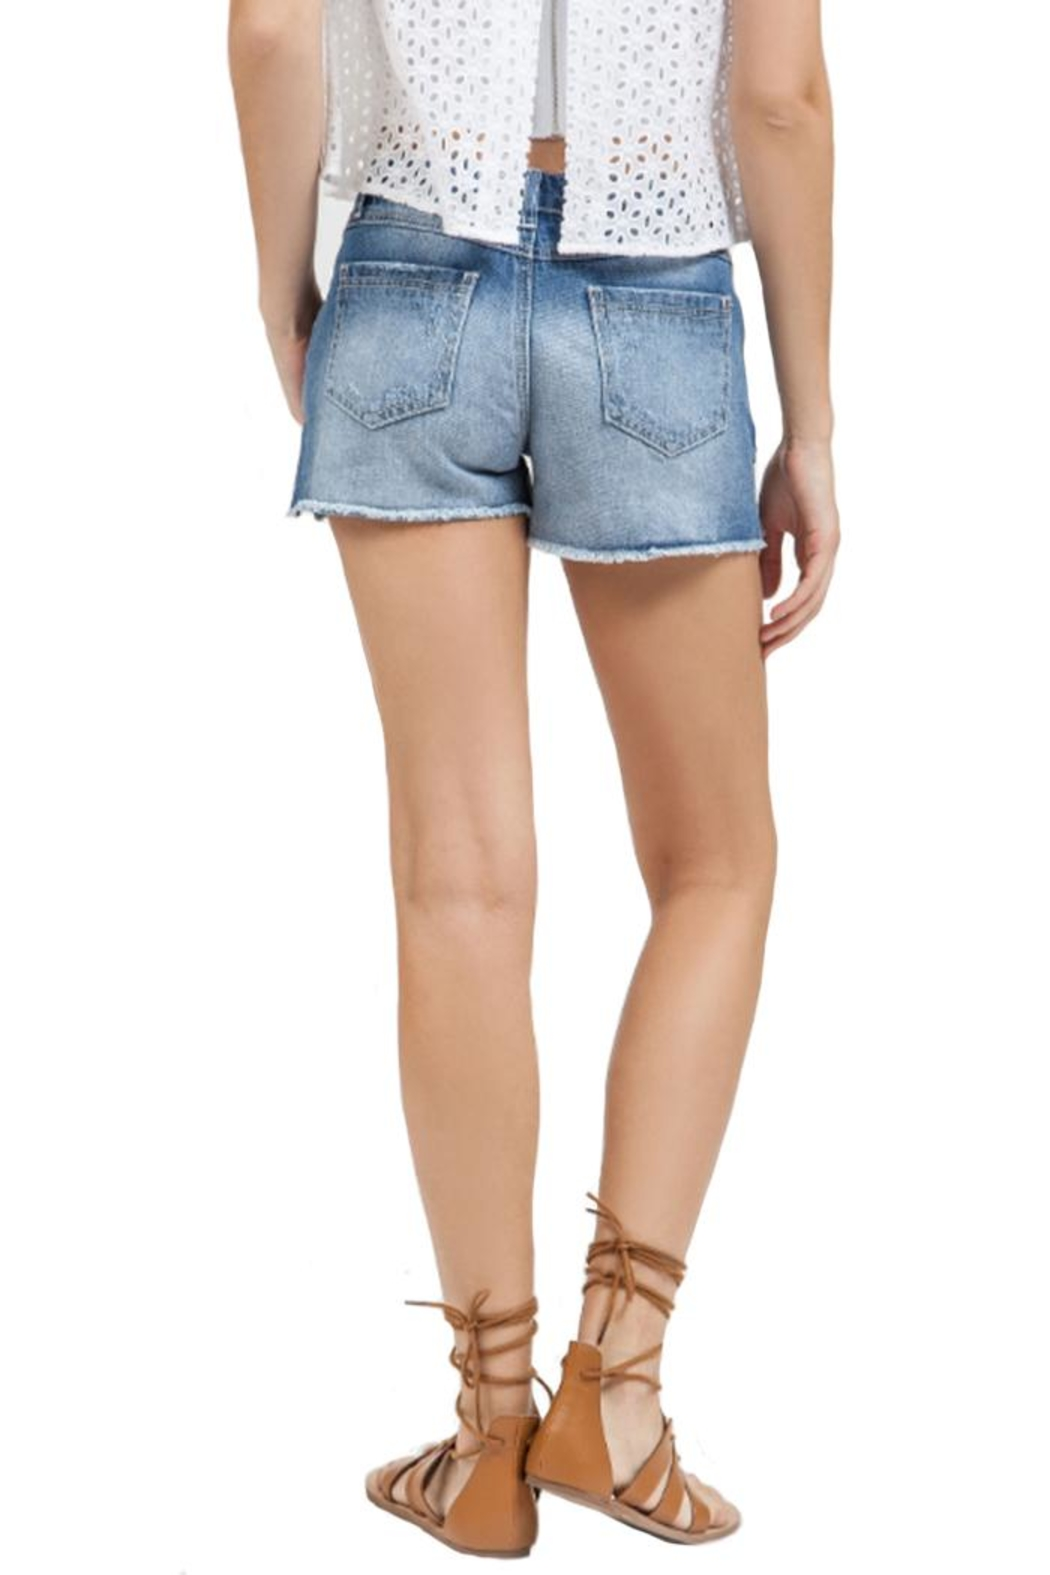 Blu Pepper Floral Embroidered Shorts - Front Full Image